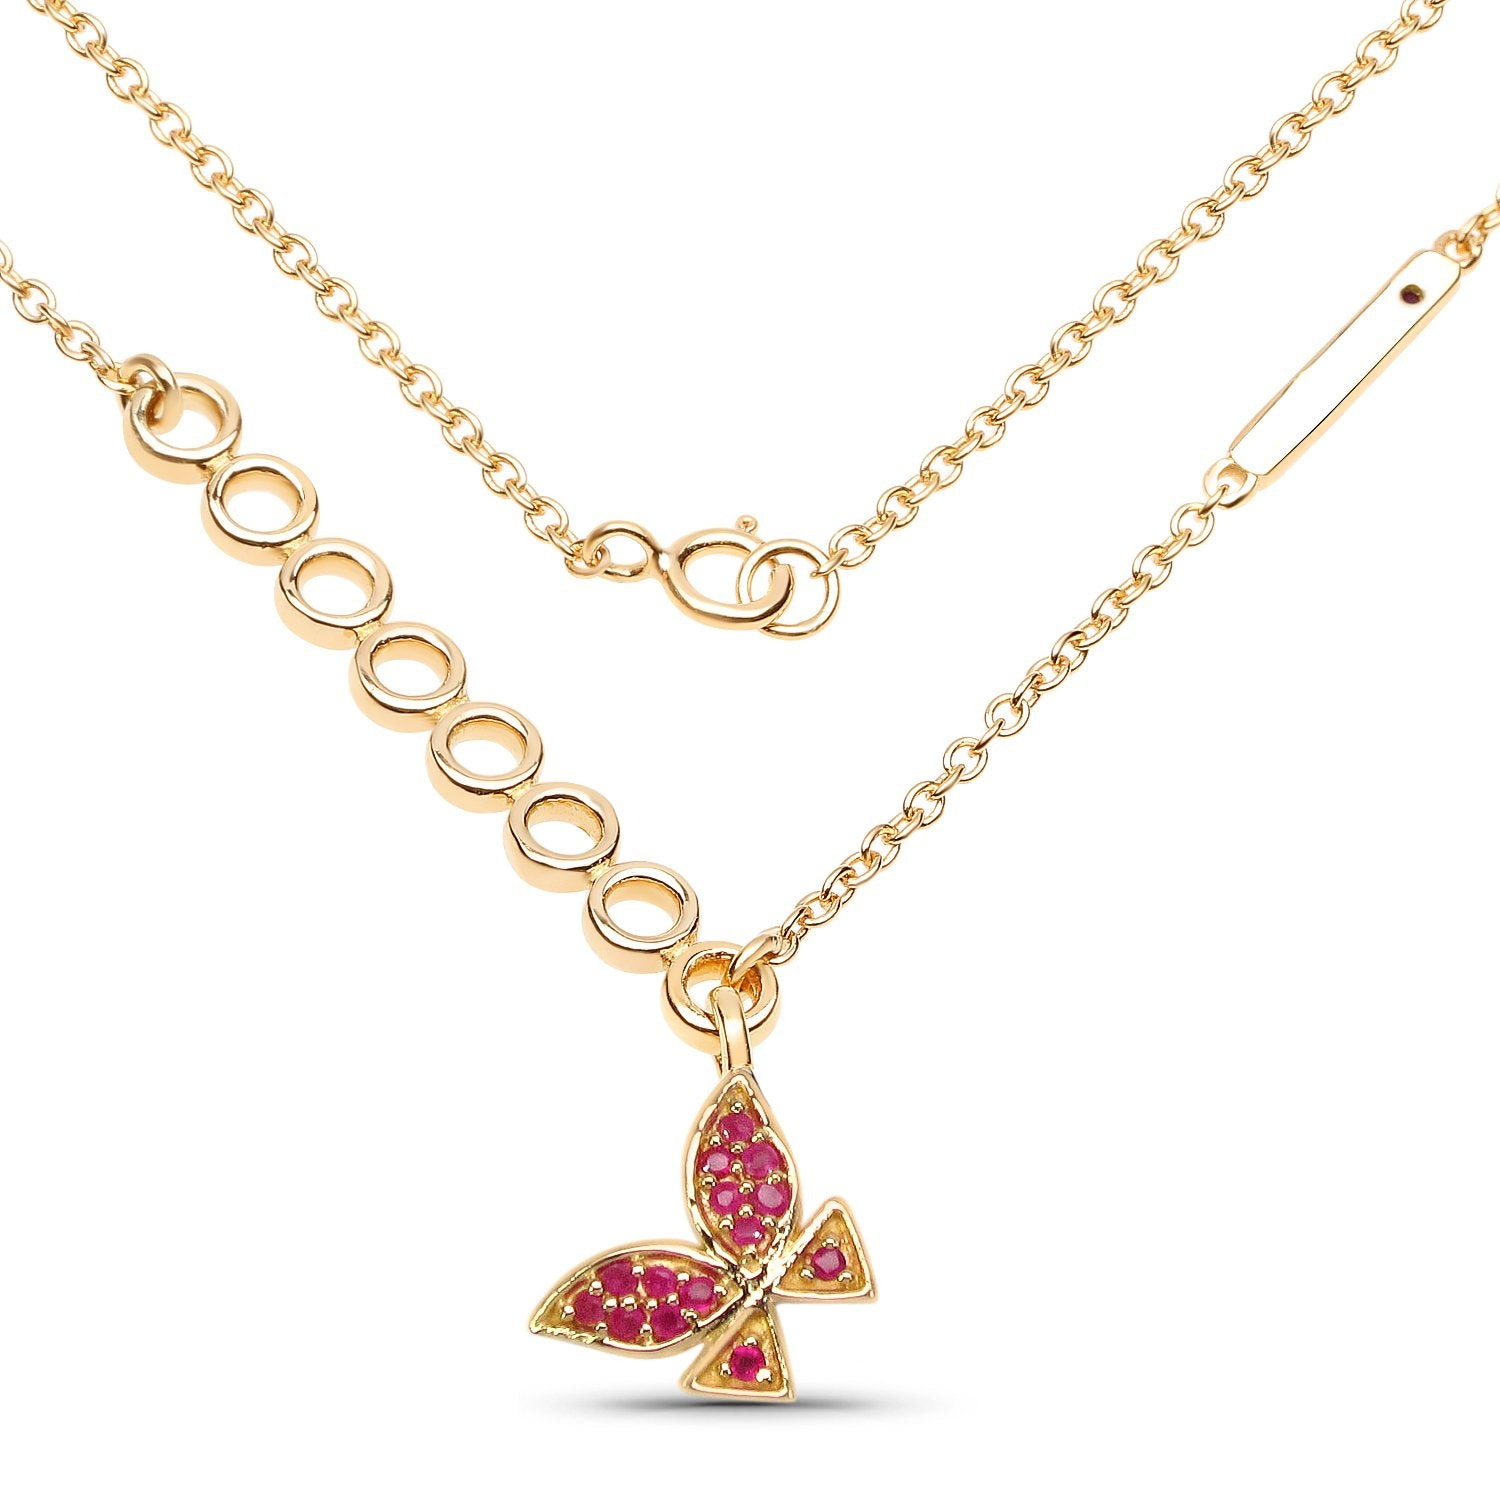 LoveHuang 0.27 Carats Genuine Ruby Butterfly Necklace Solid .925 Sterling Silver With 18KT Yellow Gold Plating, 18Inch Chain